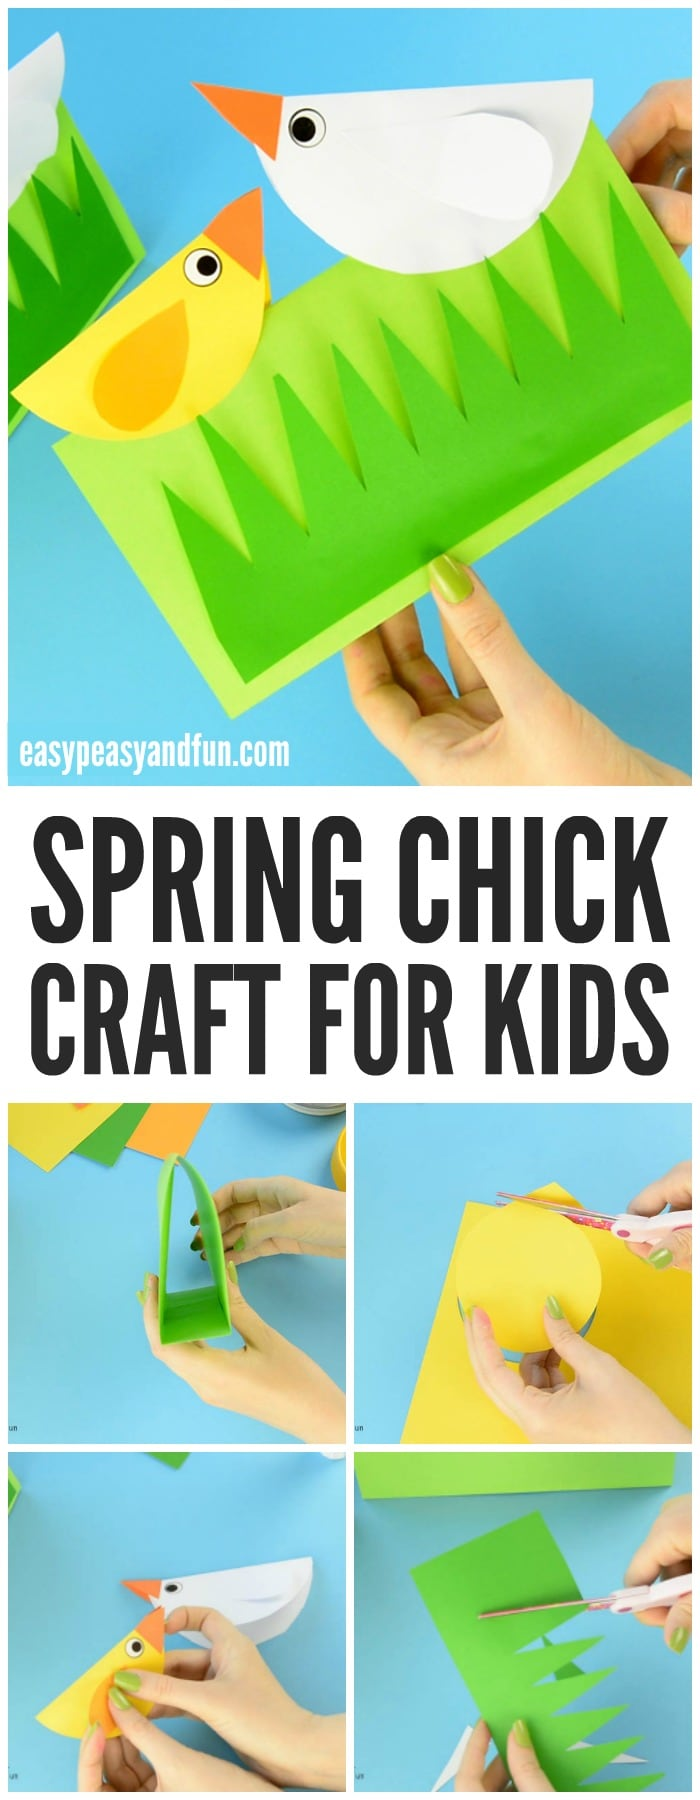 Cute Spring Chick Craft for Kids to Make